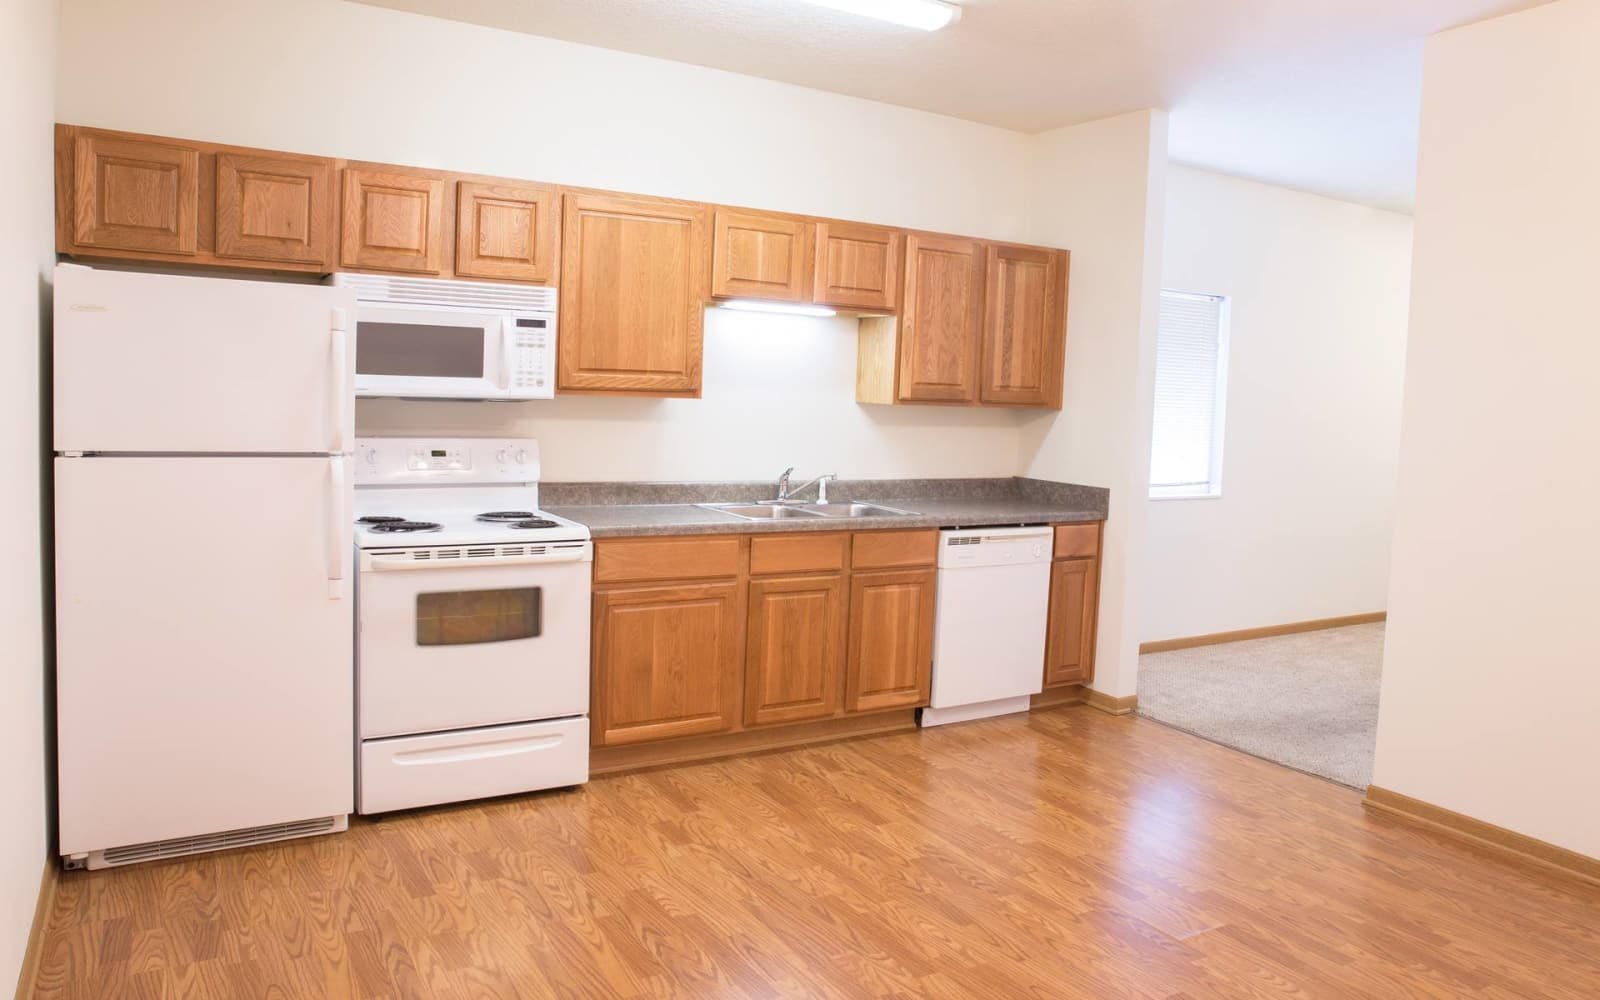 Apartment kitchen and dining room at Westwood Village in Ames, Iowa